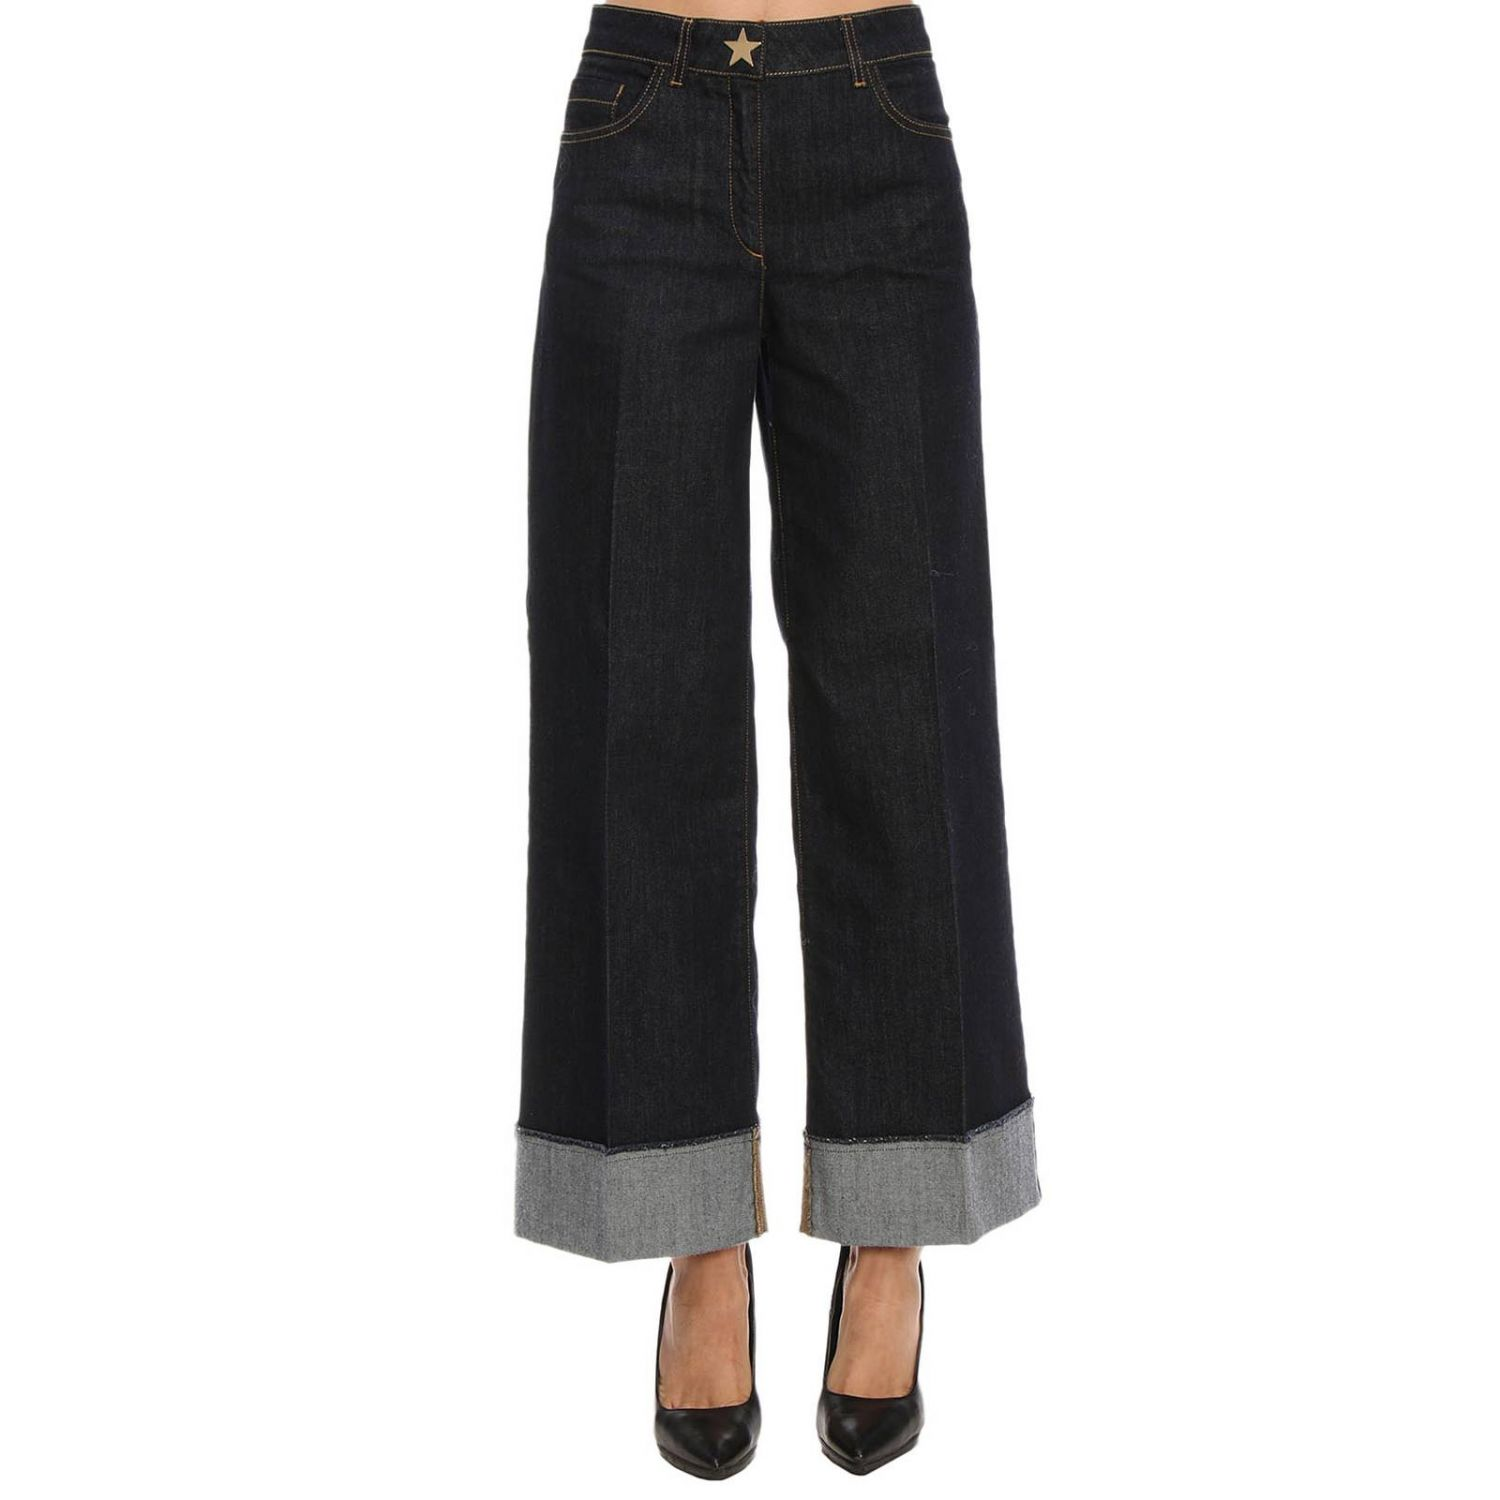 Jeans Jeans Women Boutique Moschino 8437915